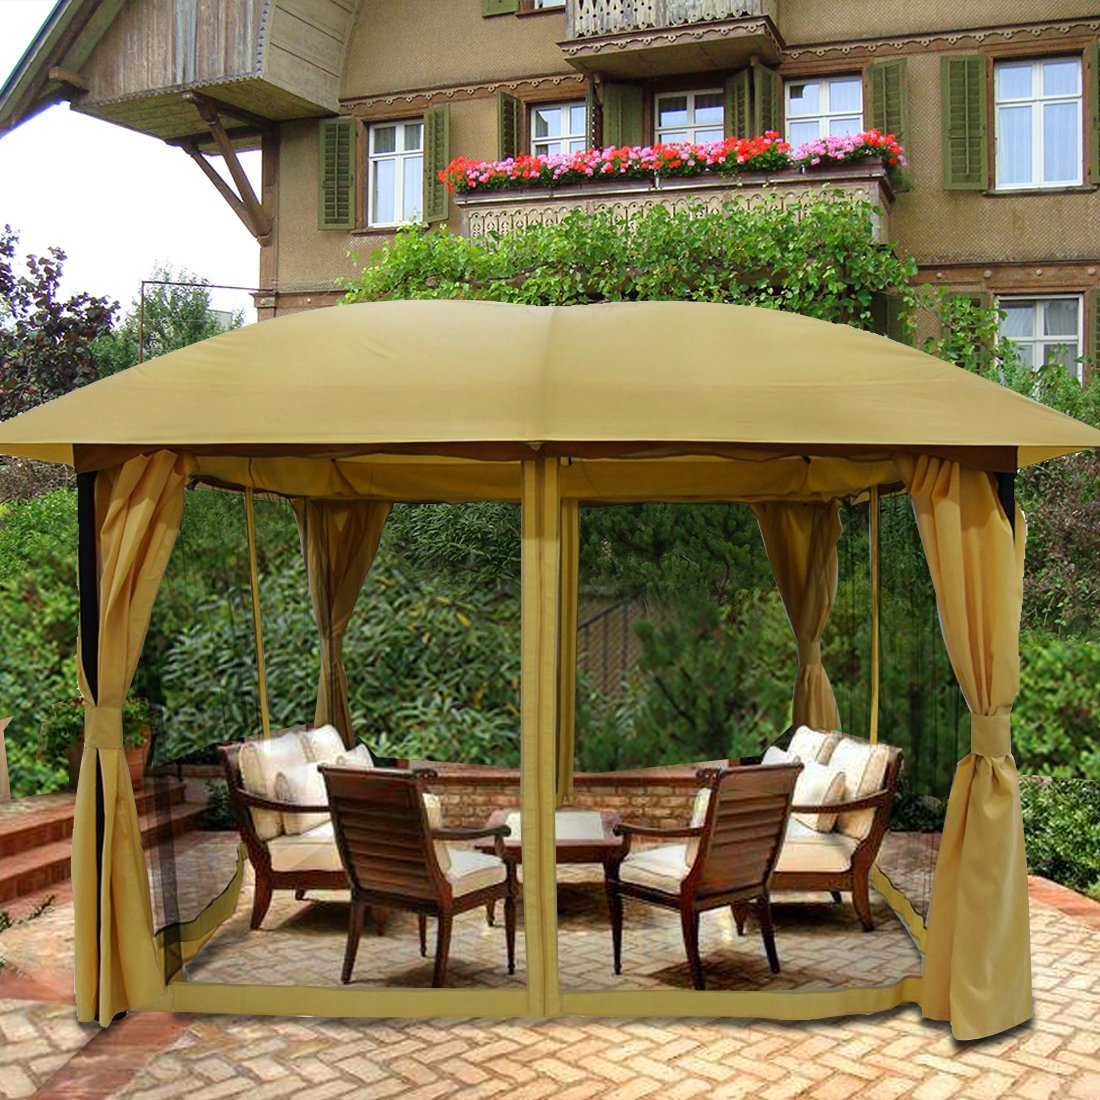 Amazon.com: Quictent 12x12 ft Metal Gazebo Canopy Pergola with Mesh Screen  Netting Curtains Heavy Duty 100% Waterproof for Deck, Patio and Backyard  (Tan): ... - Amazon.com: Quictent 12x12 Ft Metal Gazebo Canopy Pergola With Mesh